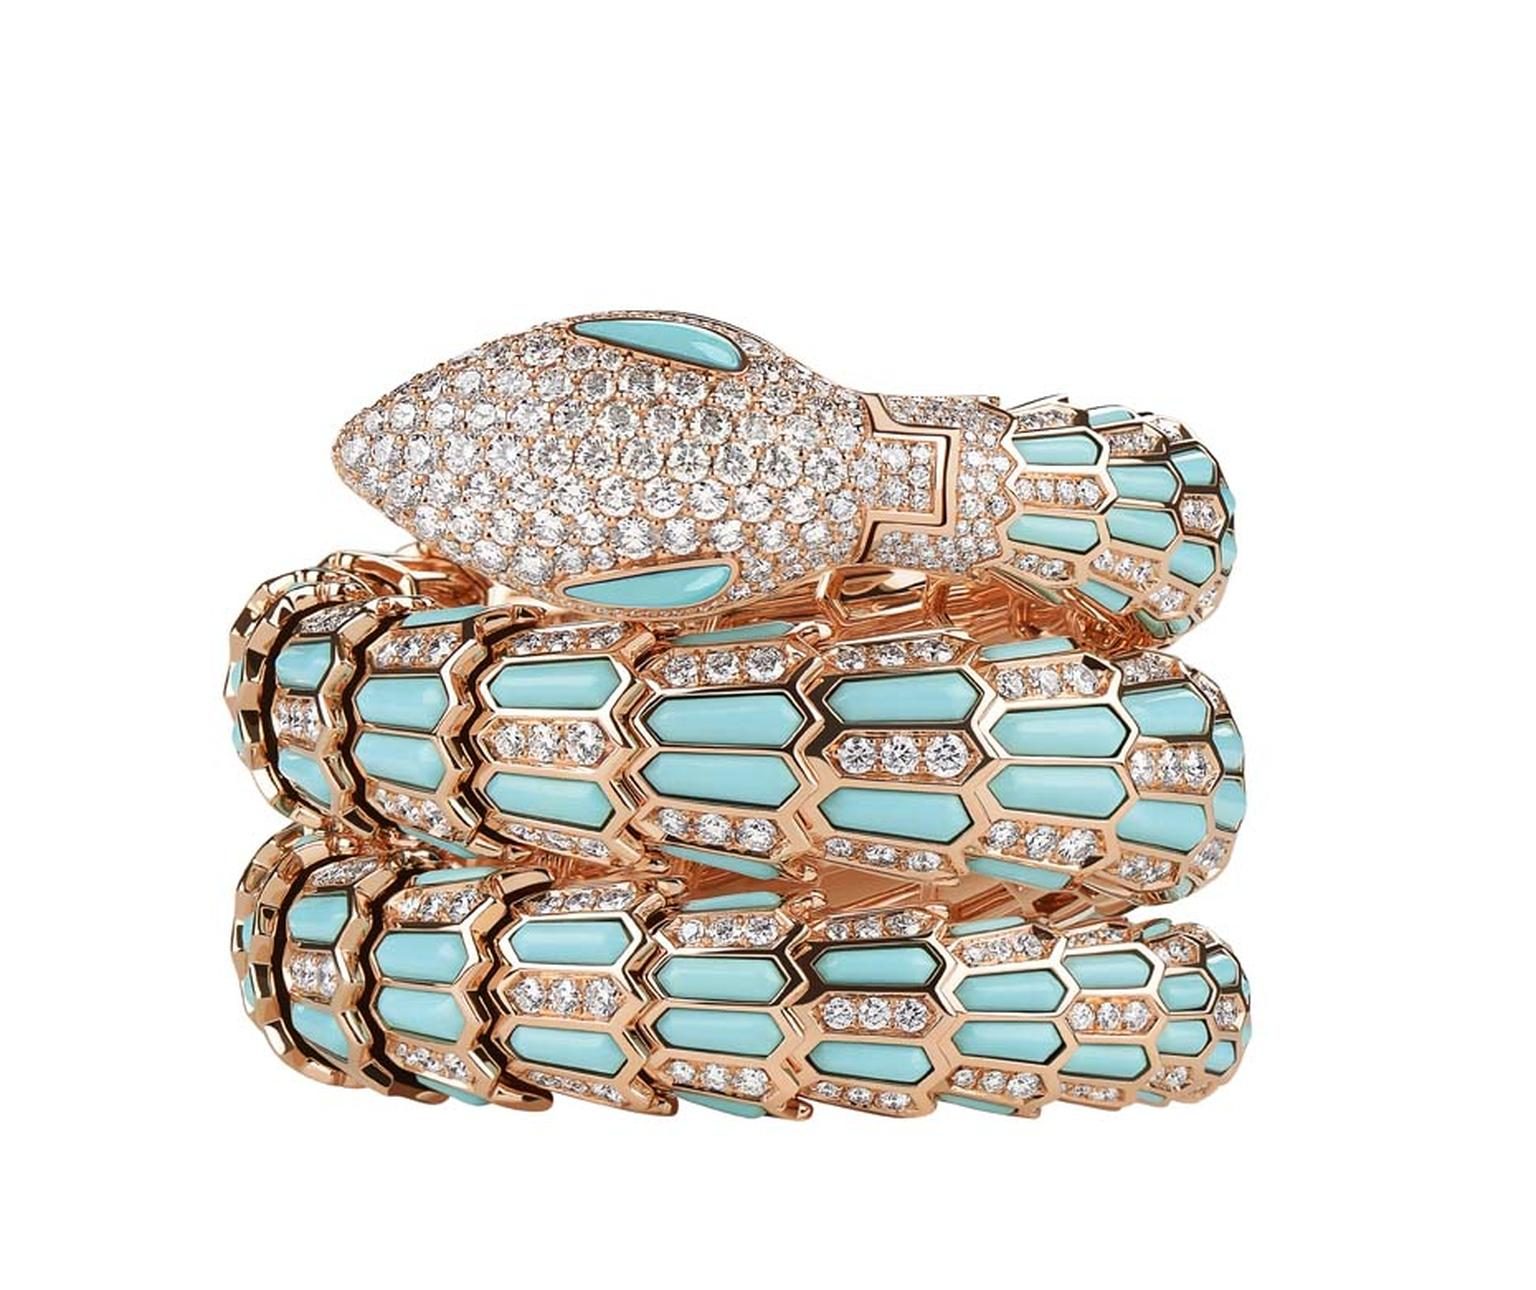 Bulgari Serpenti high jewellery snake watch in rose gold with diamonds and turquoise. Telegraph Time editor Caragh McKay, curator of the exhibition, describes the creativity, vision and skill currently seen in the world of high jewellery watch design as ""